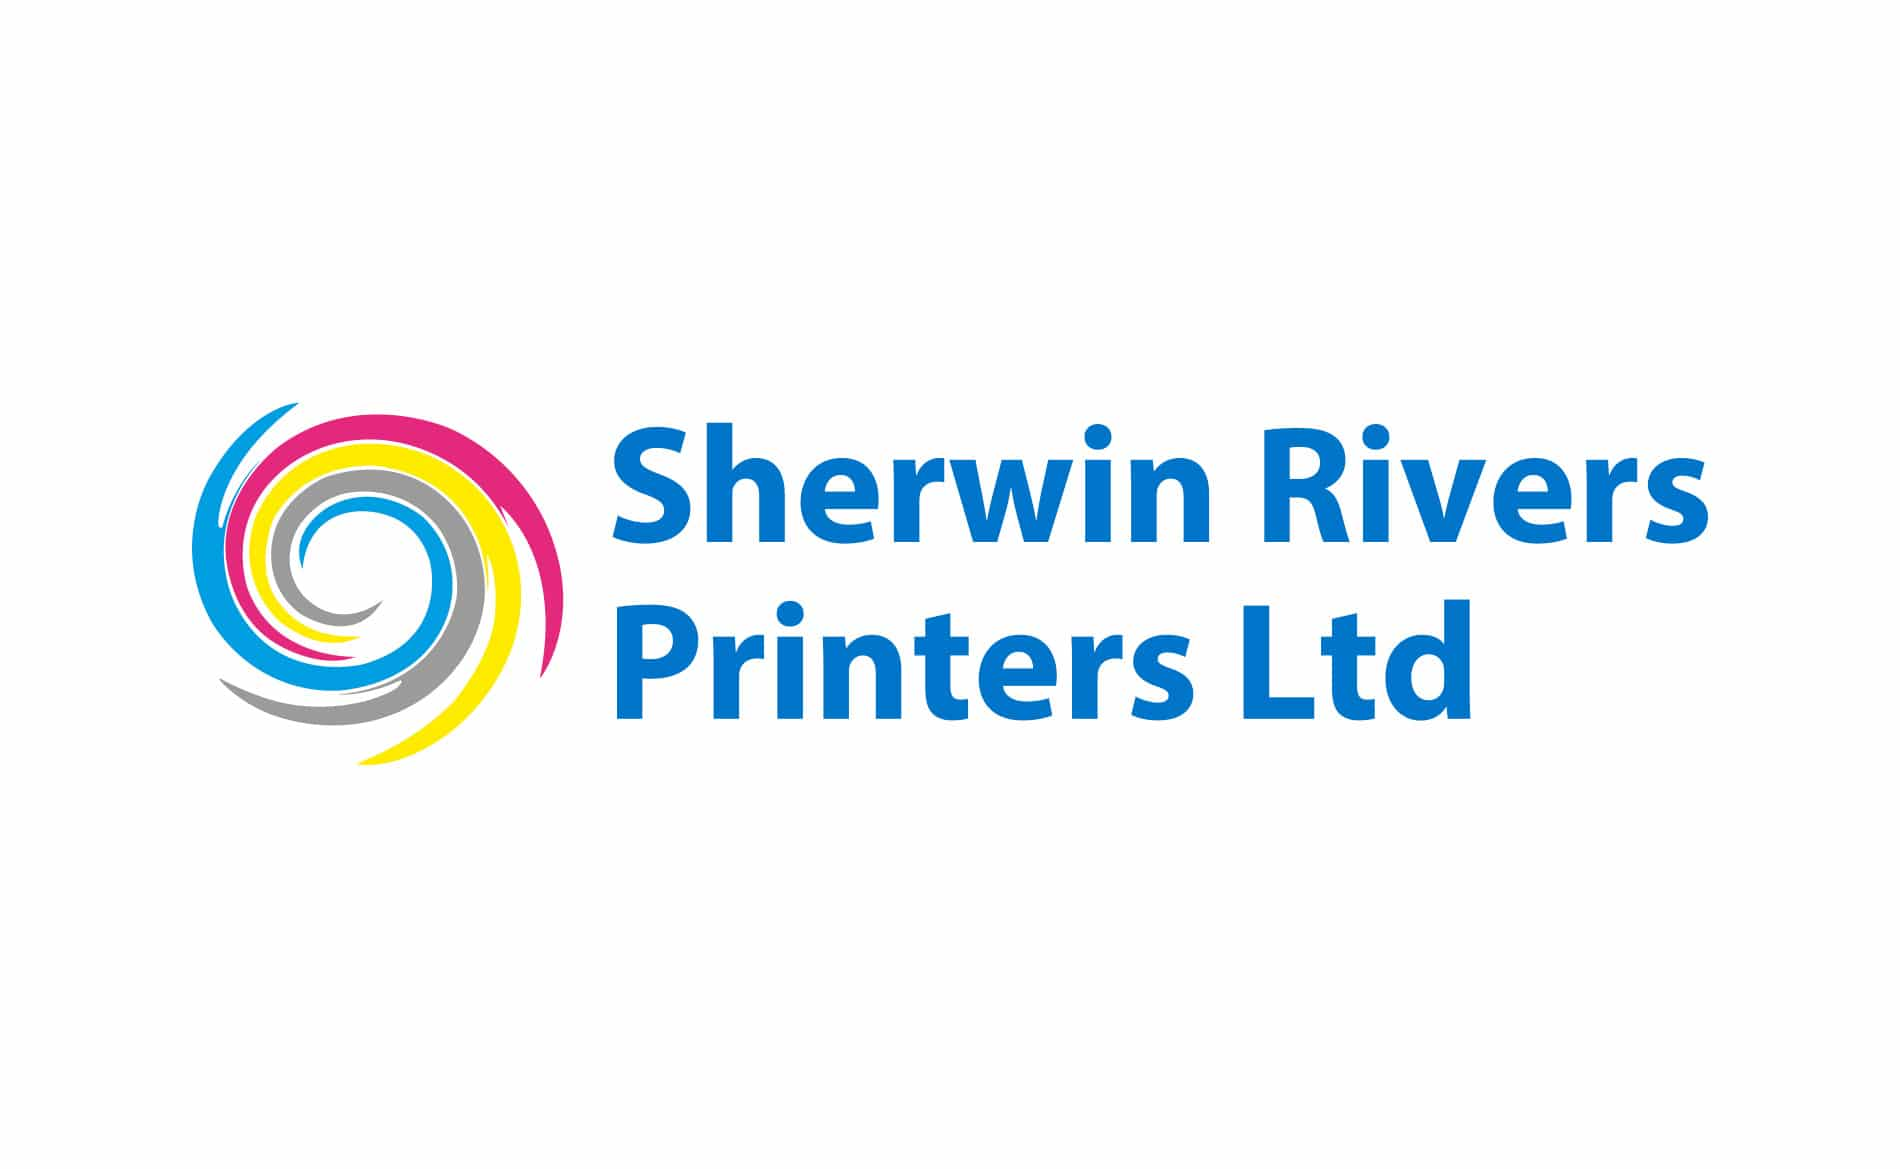 Graphic Design and Branding Services Sherwin Rivers Ltd - Logo Design 2000's